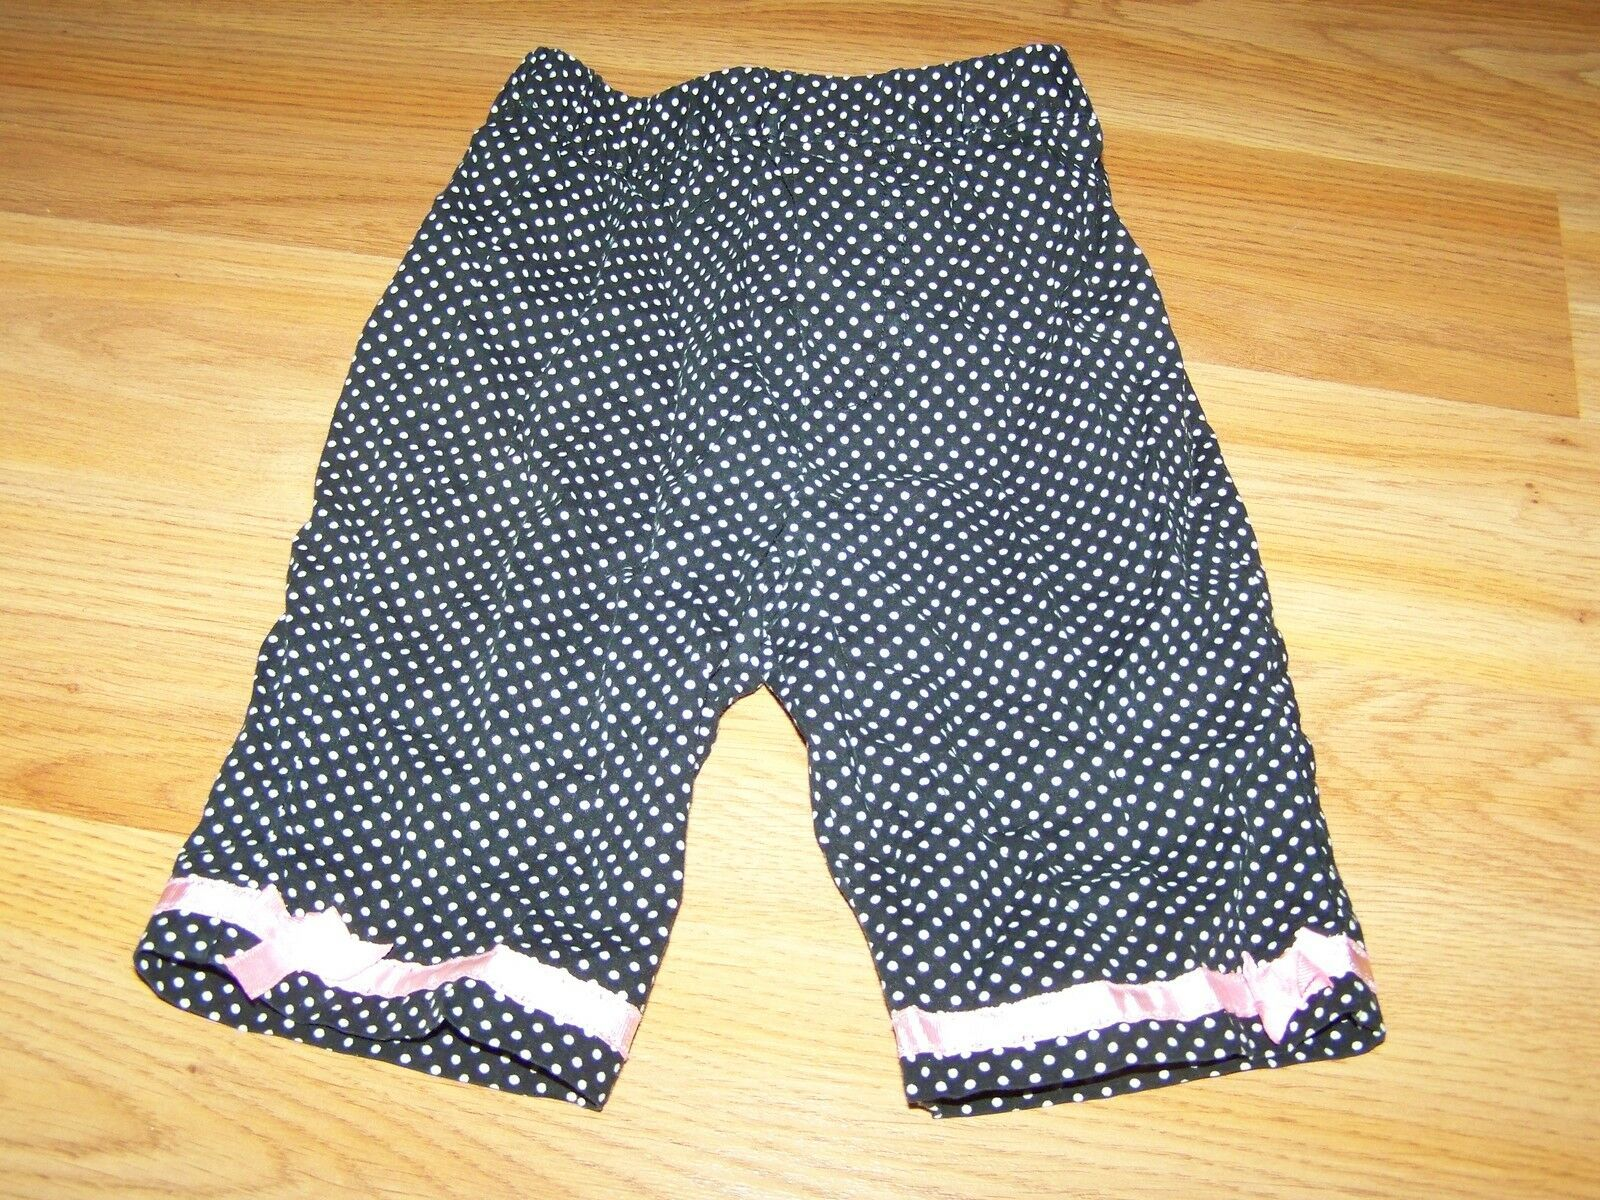 Primary image for Baby Girl's Size 12 Months Black White Polka Dot Capris Cropped Pants EUC